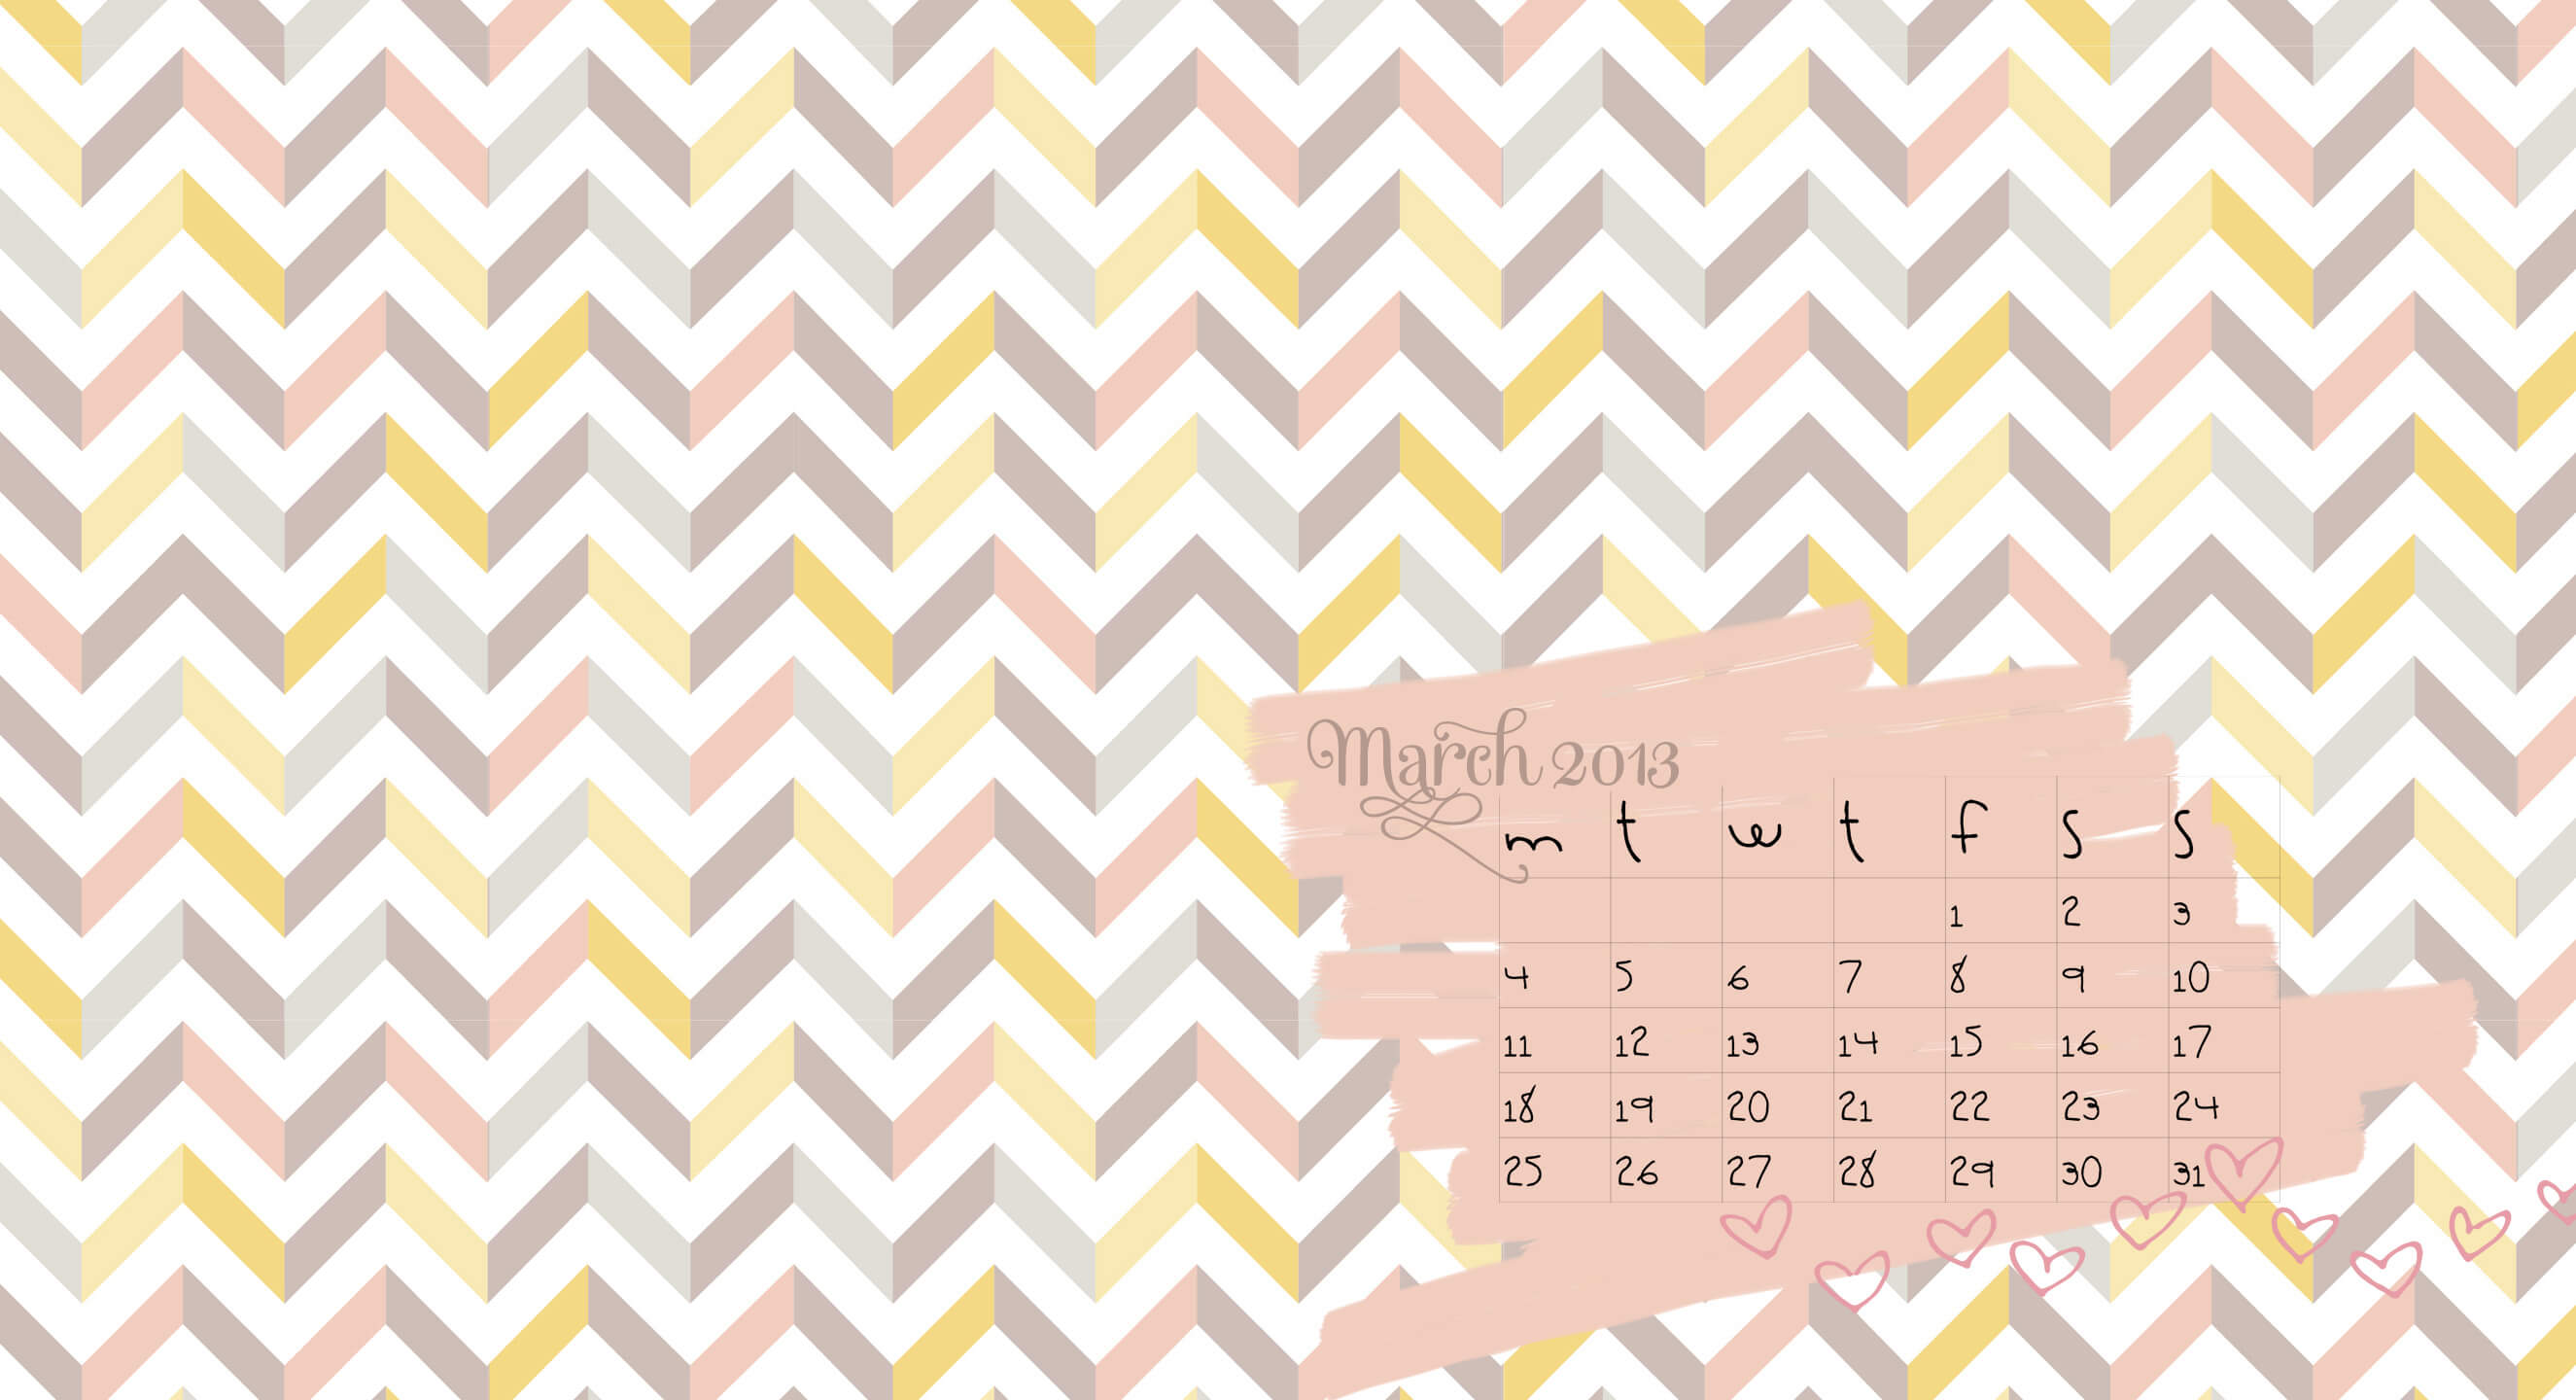 Calendar Desktop Wallpaper March : Free desktop iphone ipad wallpapers and calendars for march